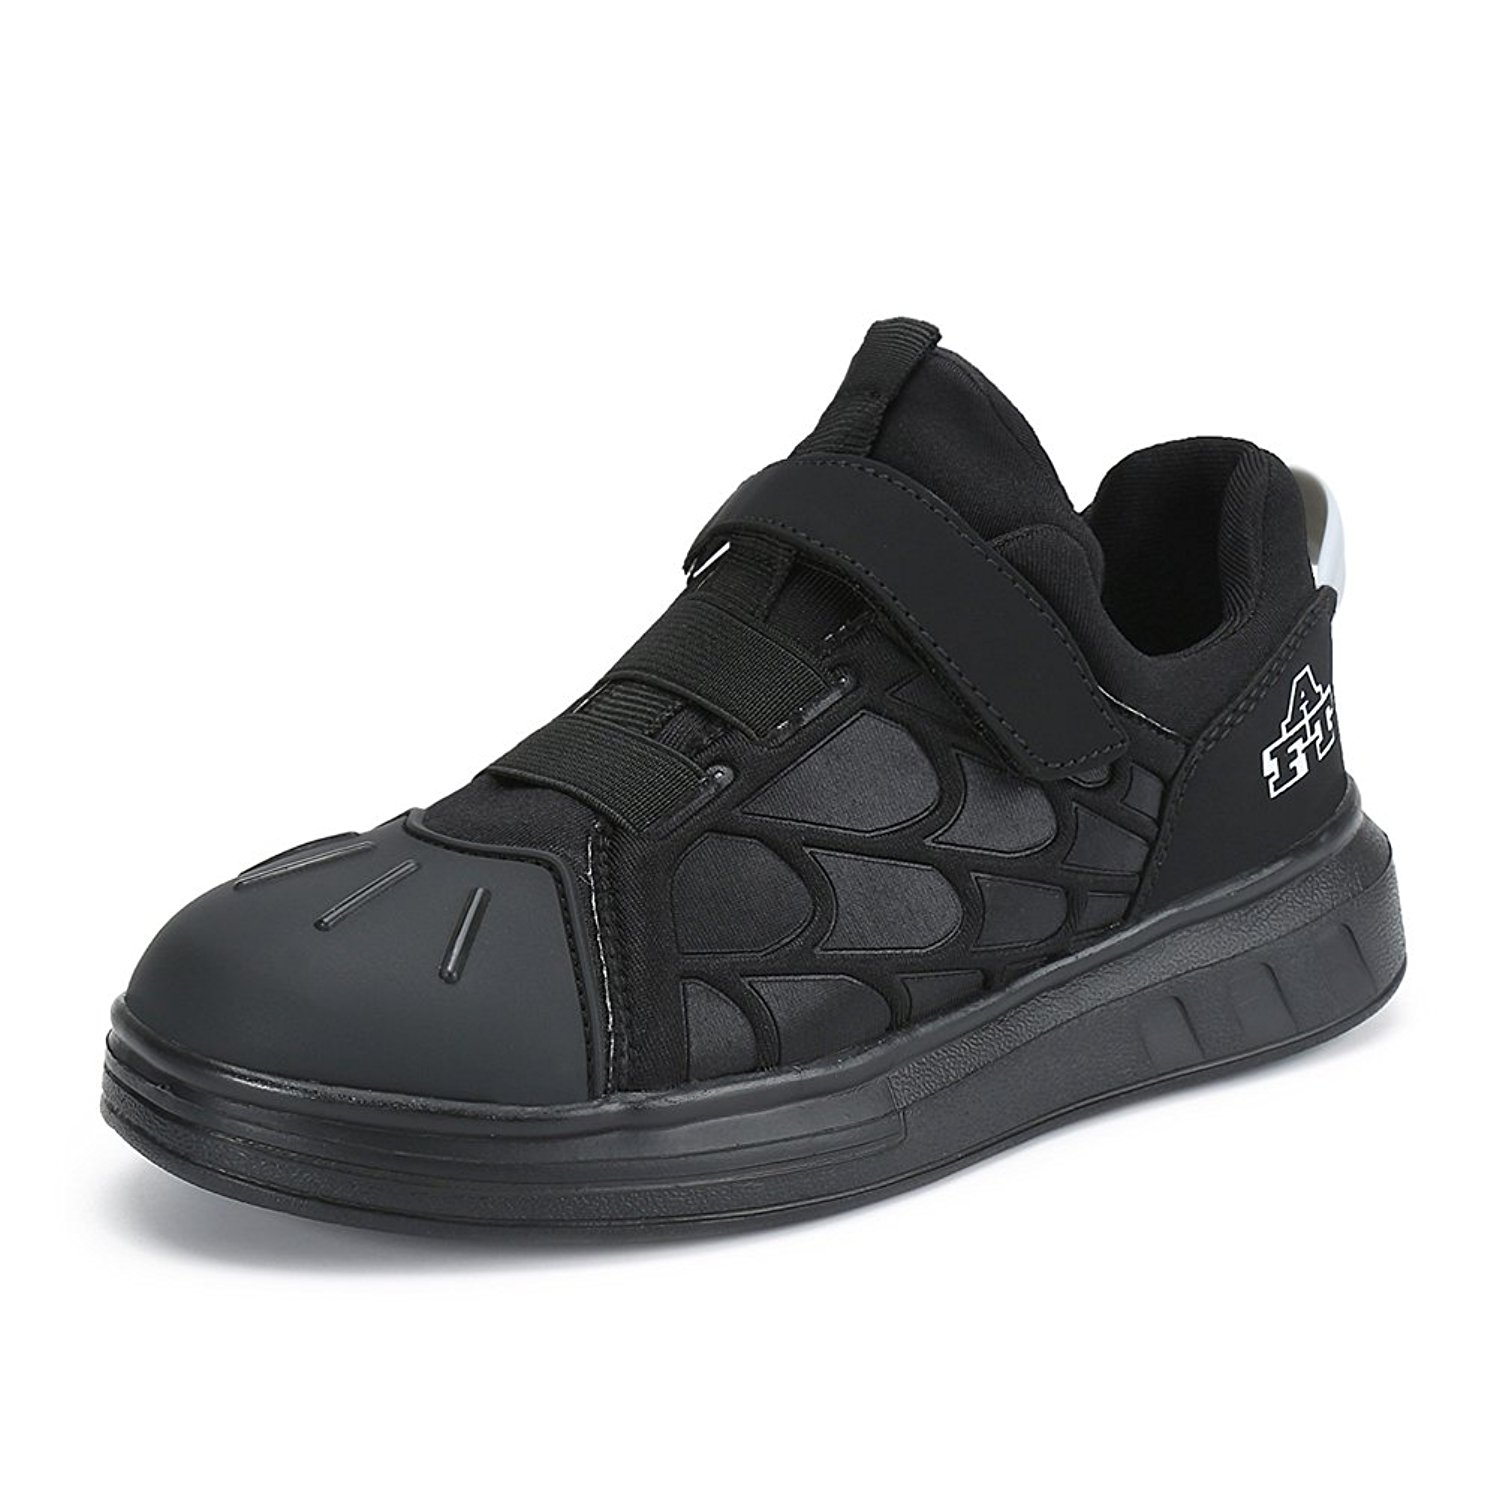 4e25dda60202a7 AFFINEST Kids Skate Shoe Lightweight Athletic Sports Sneakers Casual Shoes  For Boys Girls